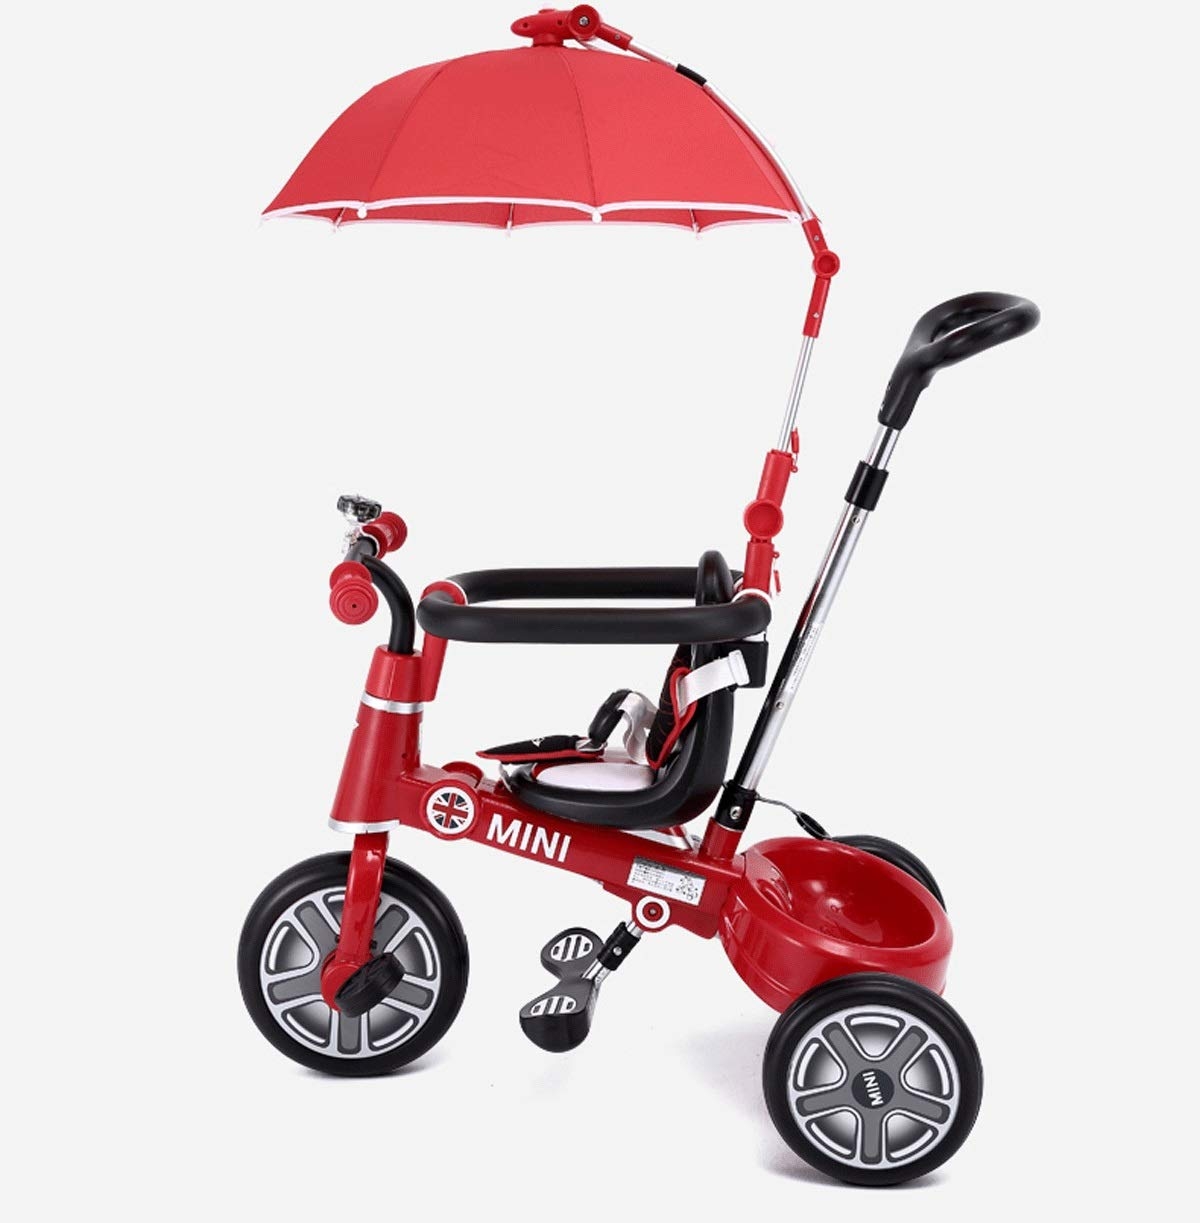 Baianju Children's Tricycles Kids Baby Strollers Folding Bikes Bicycles Can Be Used for Strollers Male and Female Baby Tricycles